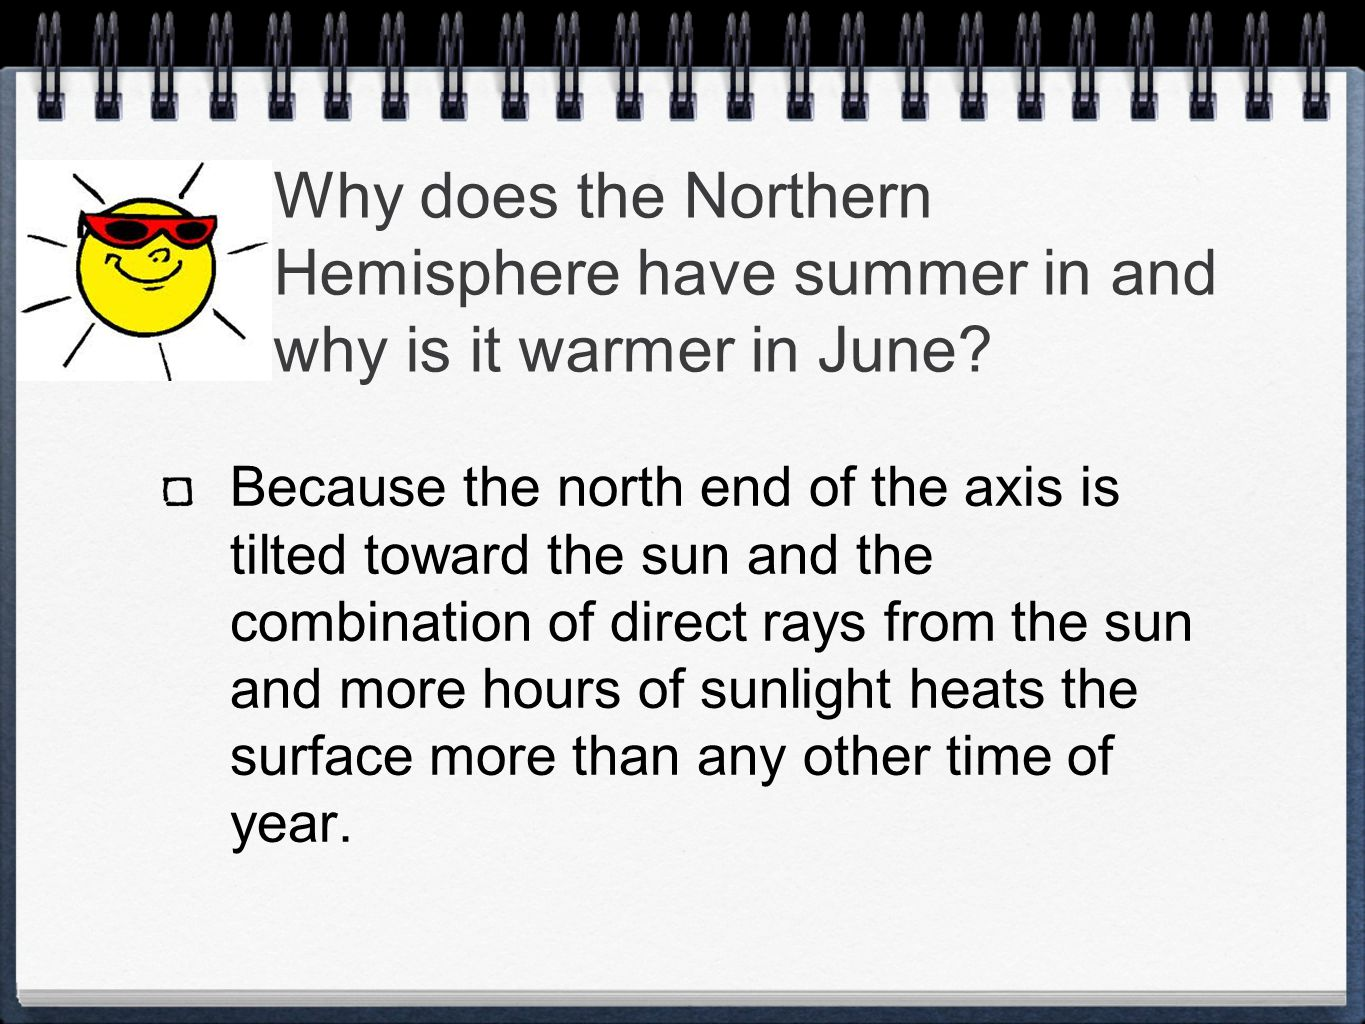 Why does the Northern Hemisphere have summer in and why is it warmer in June? Because the north end of the axis is tilted toward the sun and the combi